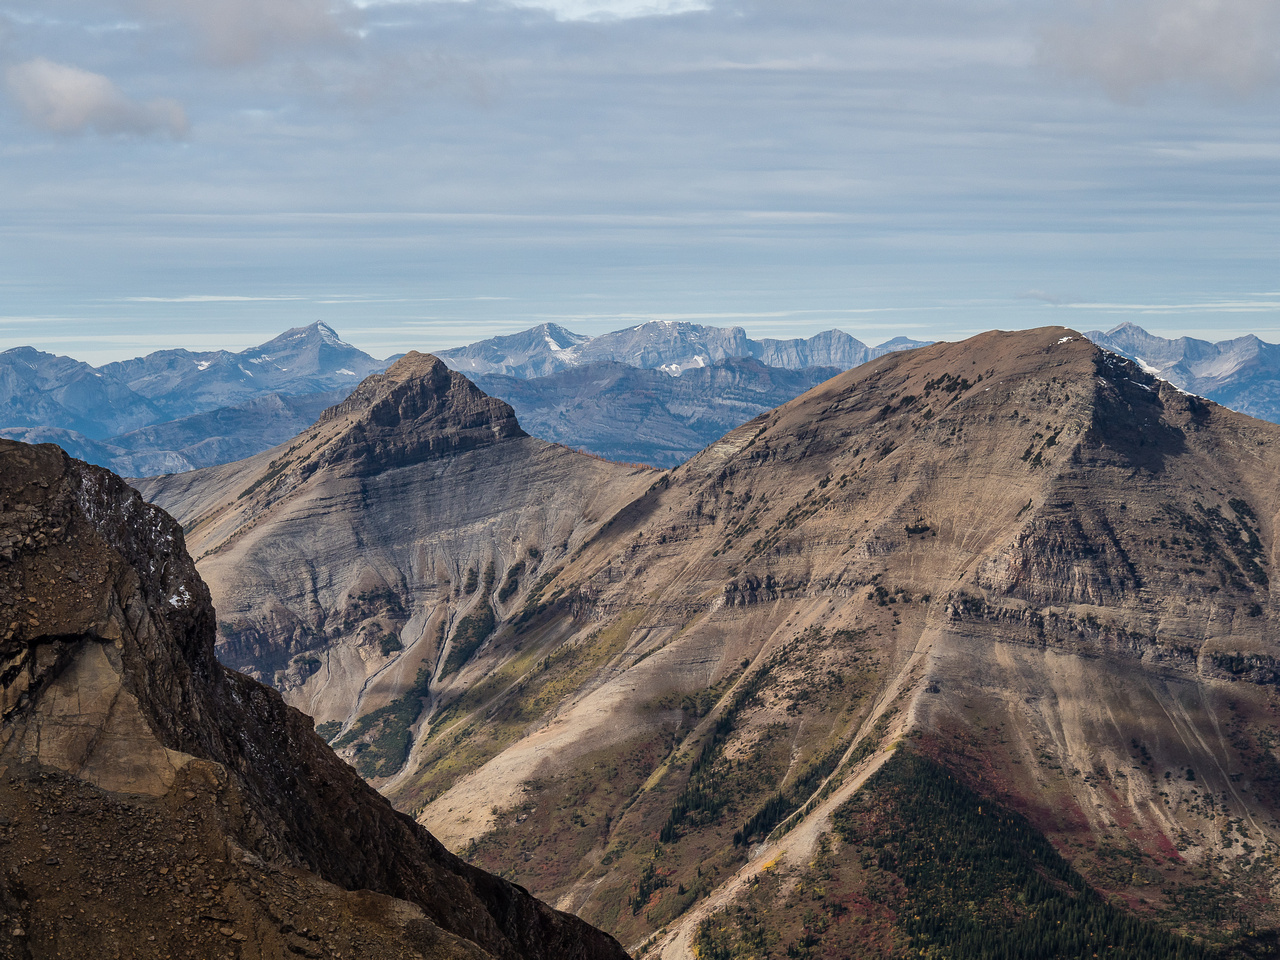 Krowicki (L) and Miles (R) are a combined day trip that involves losing height over Middle Kootenay Pass.